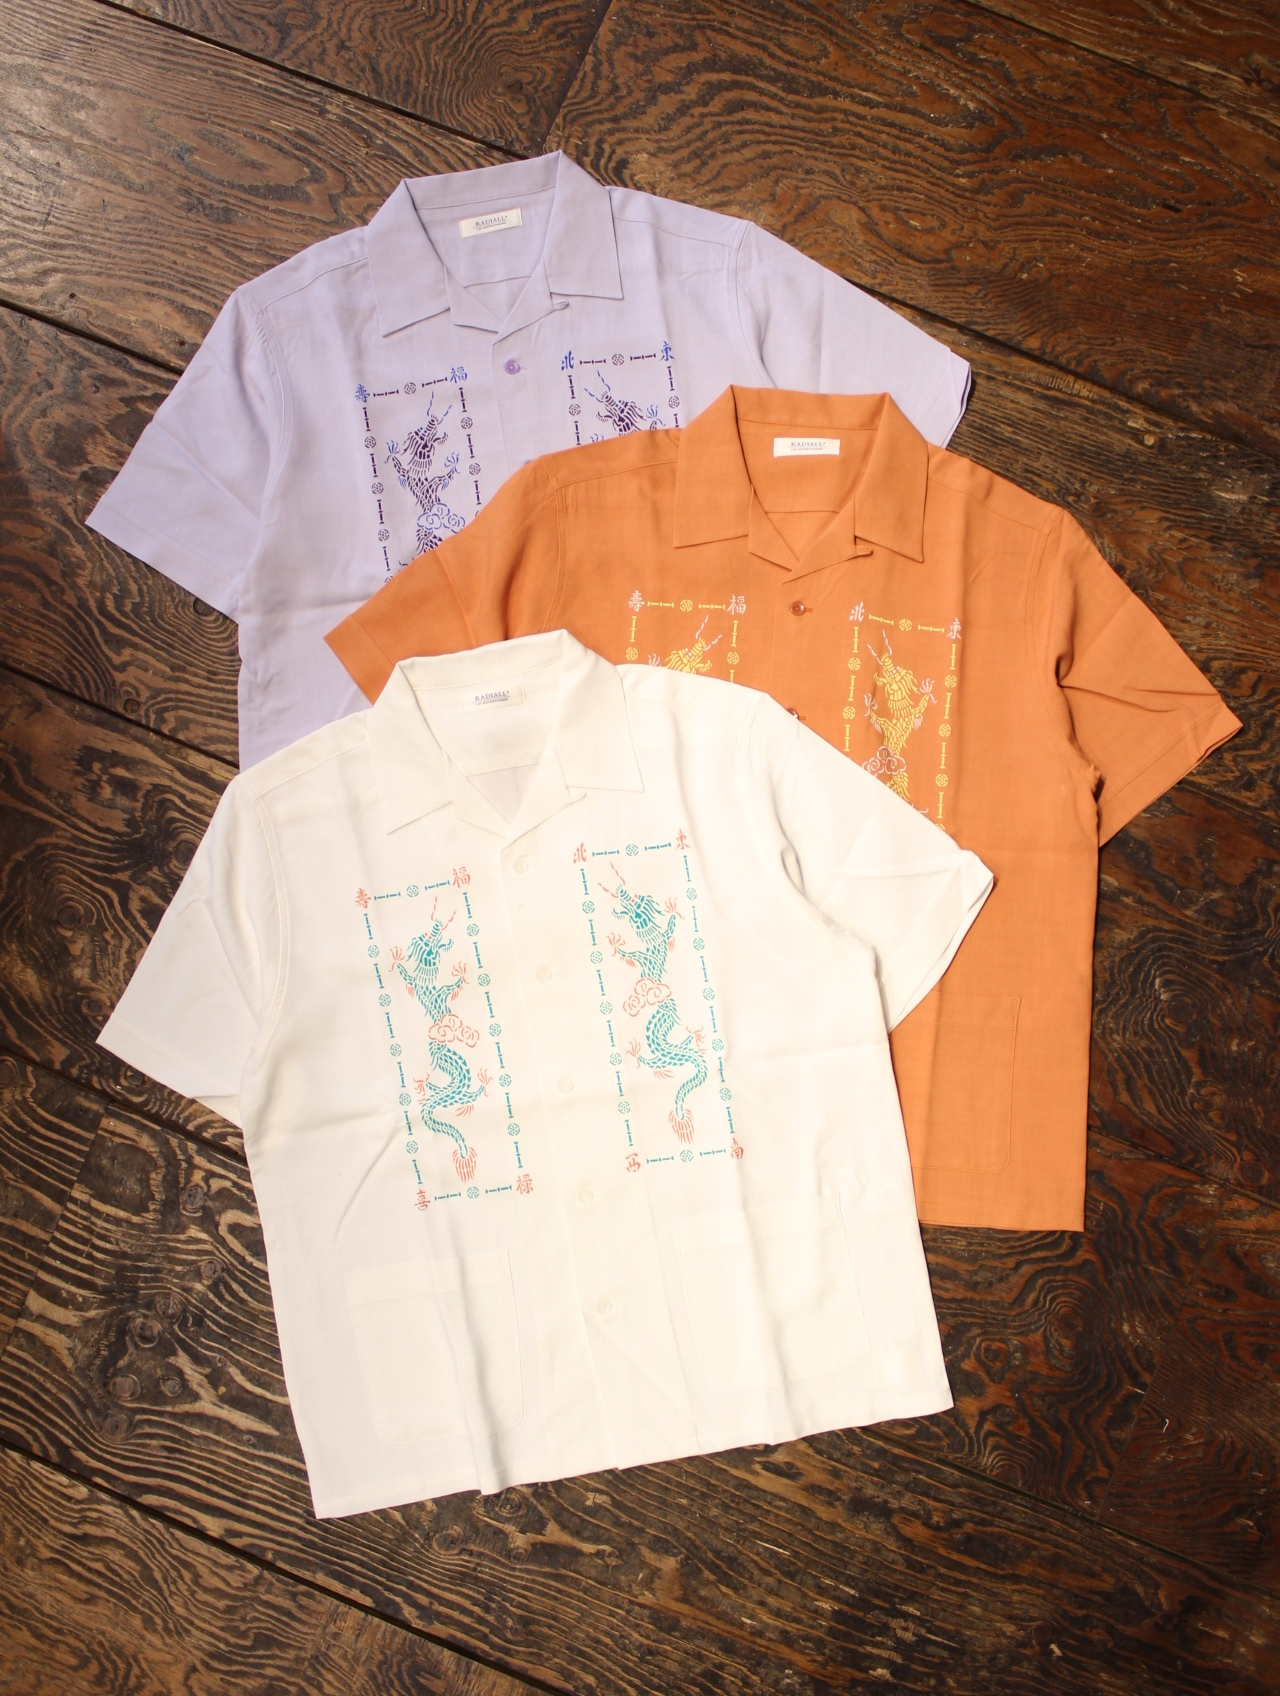 RADIALL  「SHAOLIN DUBBIES - OPEN COLLARED SHIRT S/S」  オープンカラー レーヨンシャツ